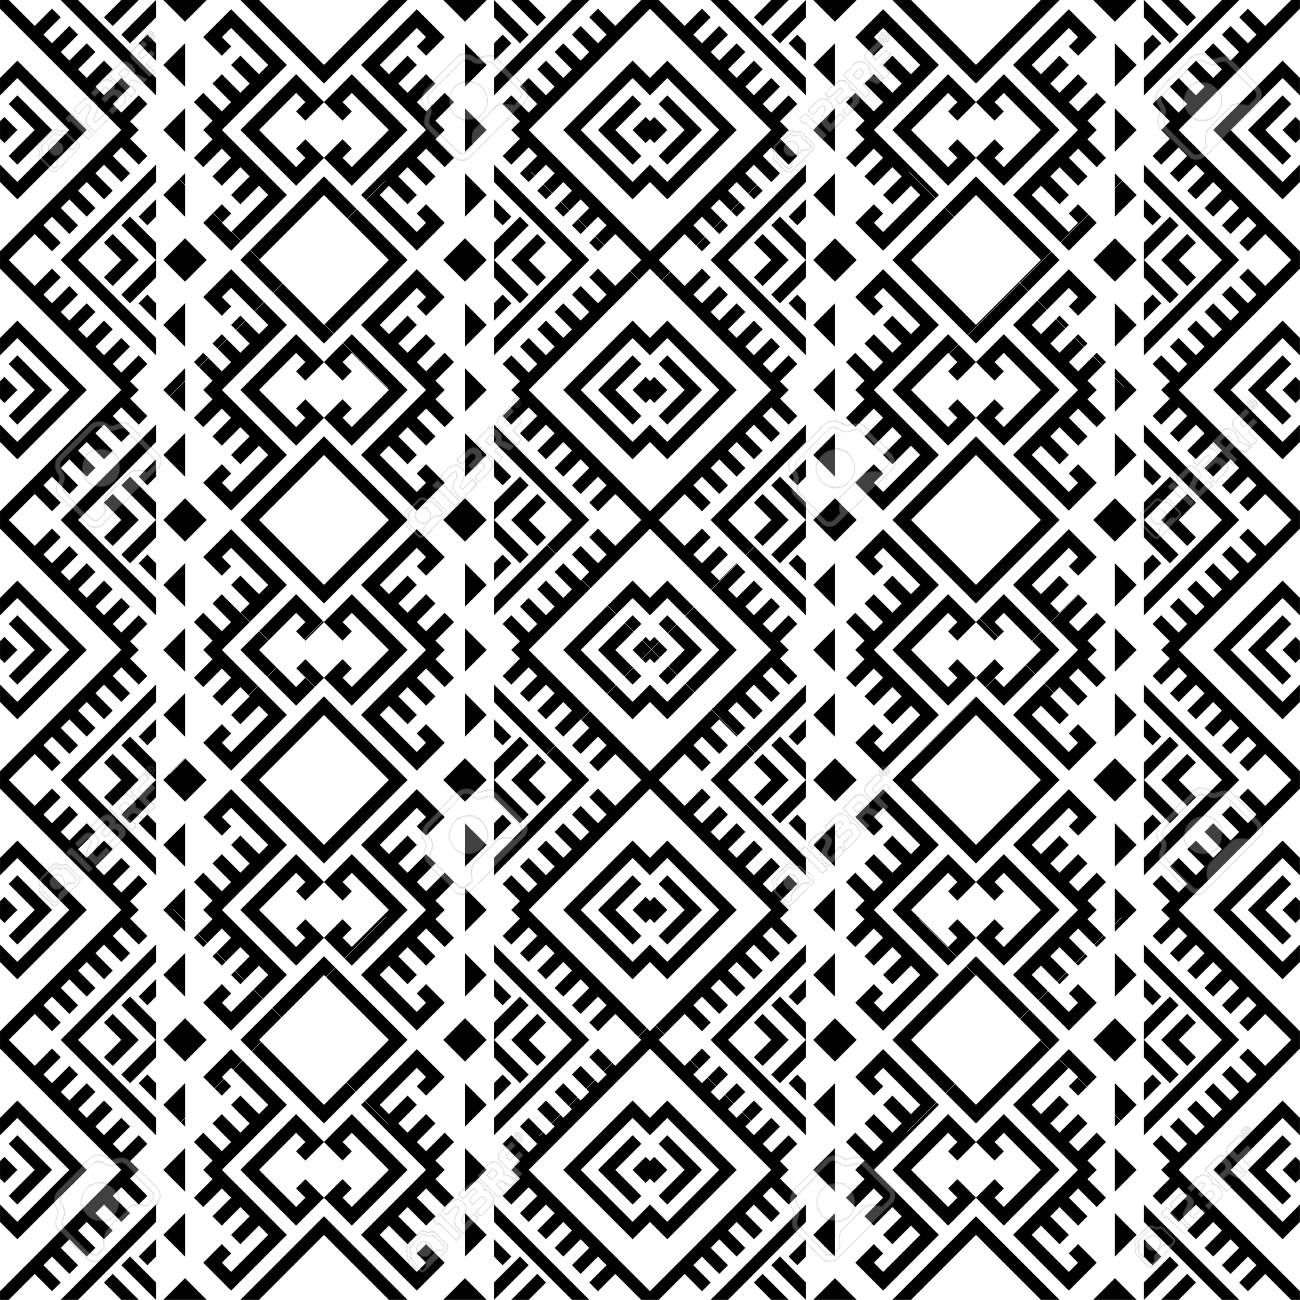 Aztec ethnic seamless pattern design in black and white color. Ethnic Illustration vector. - 153191100